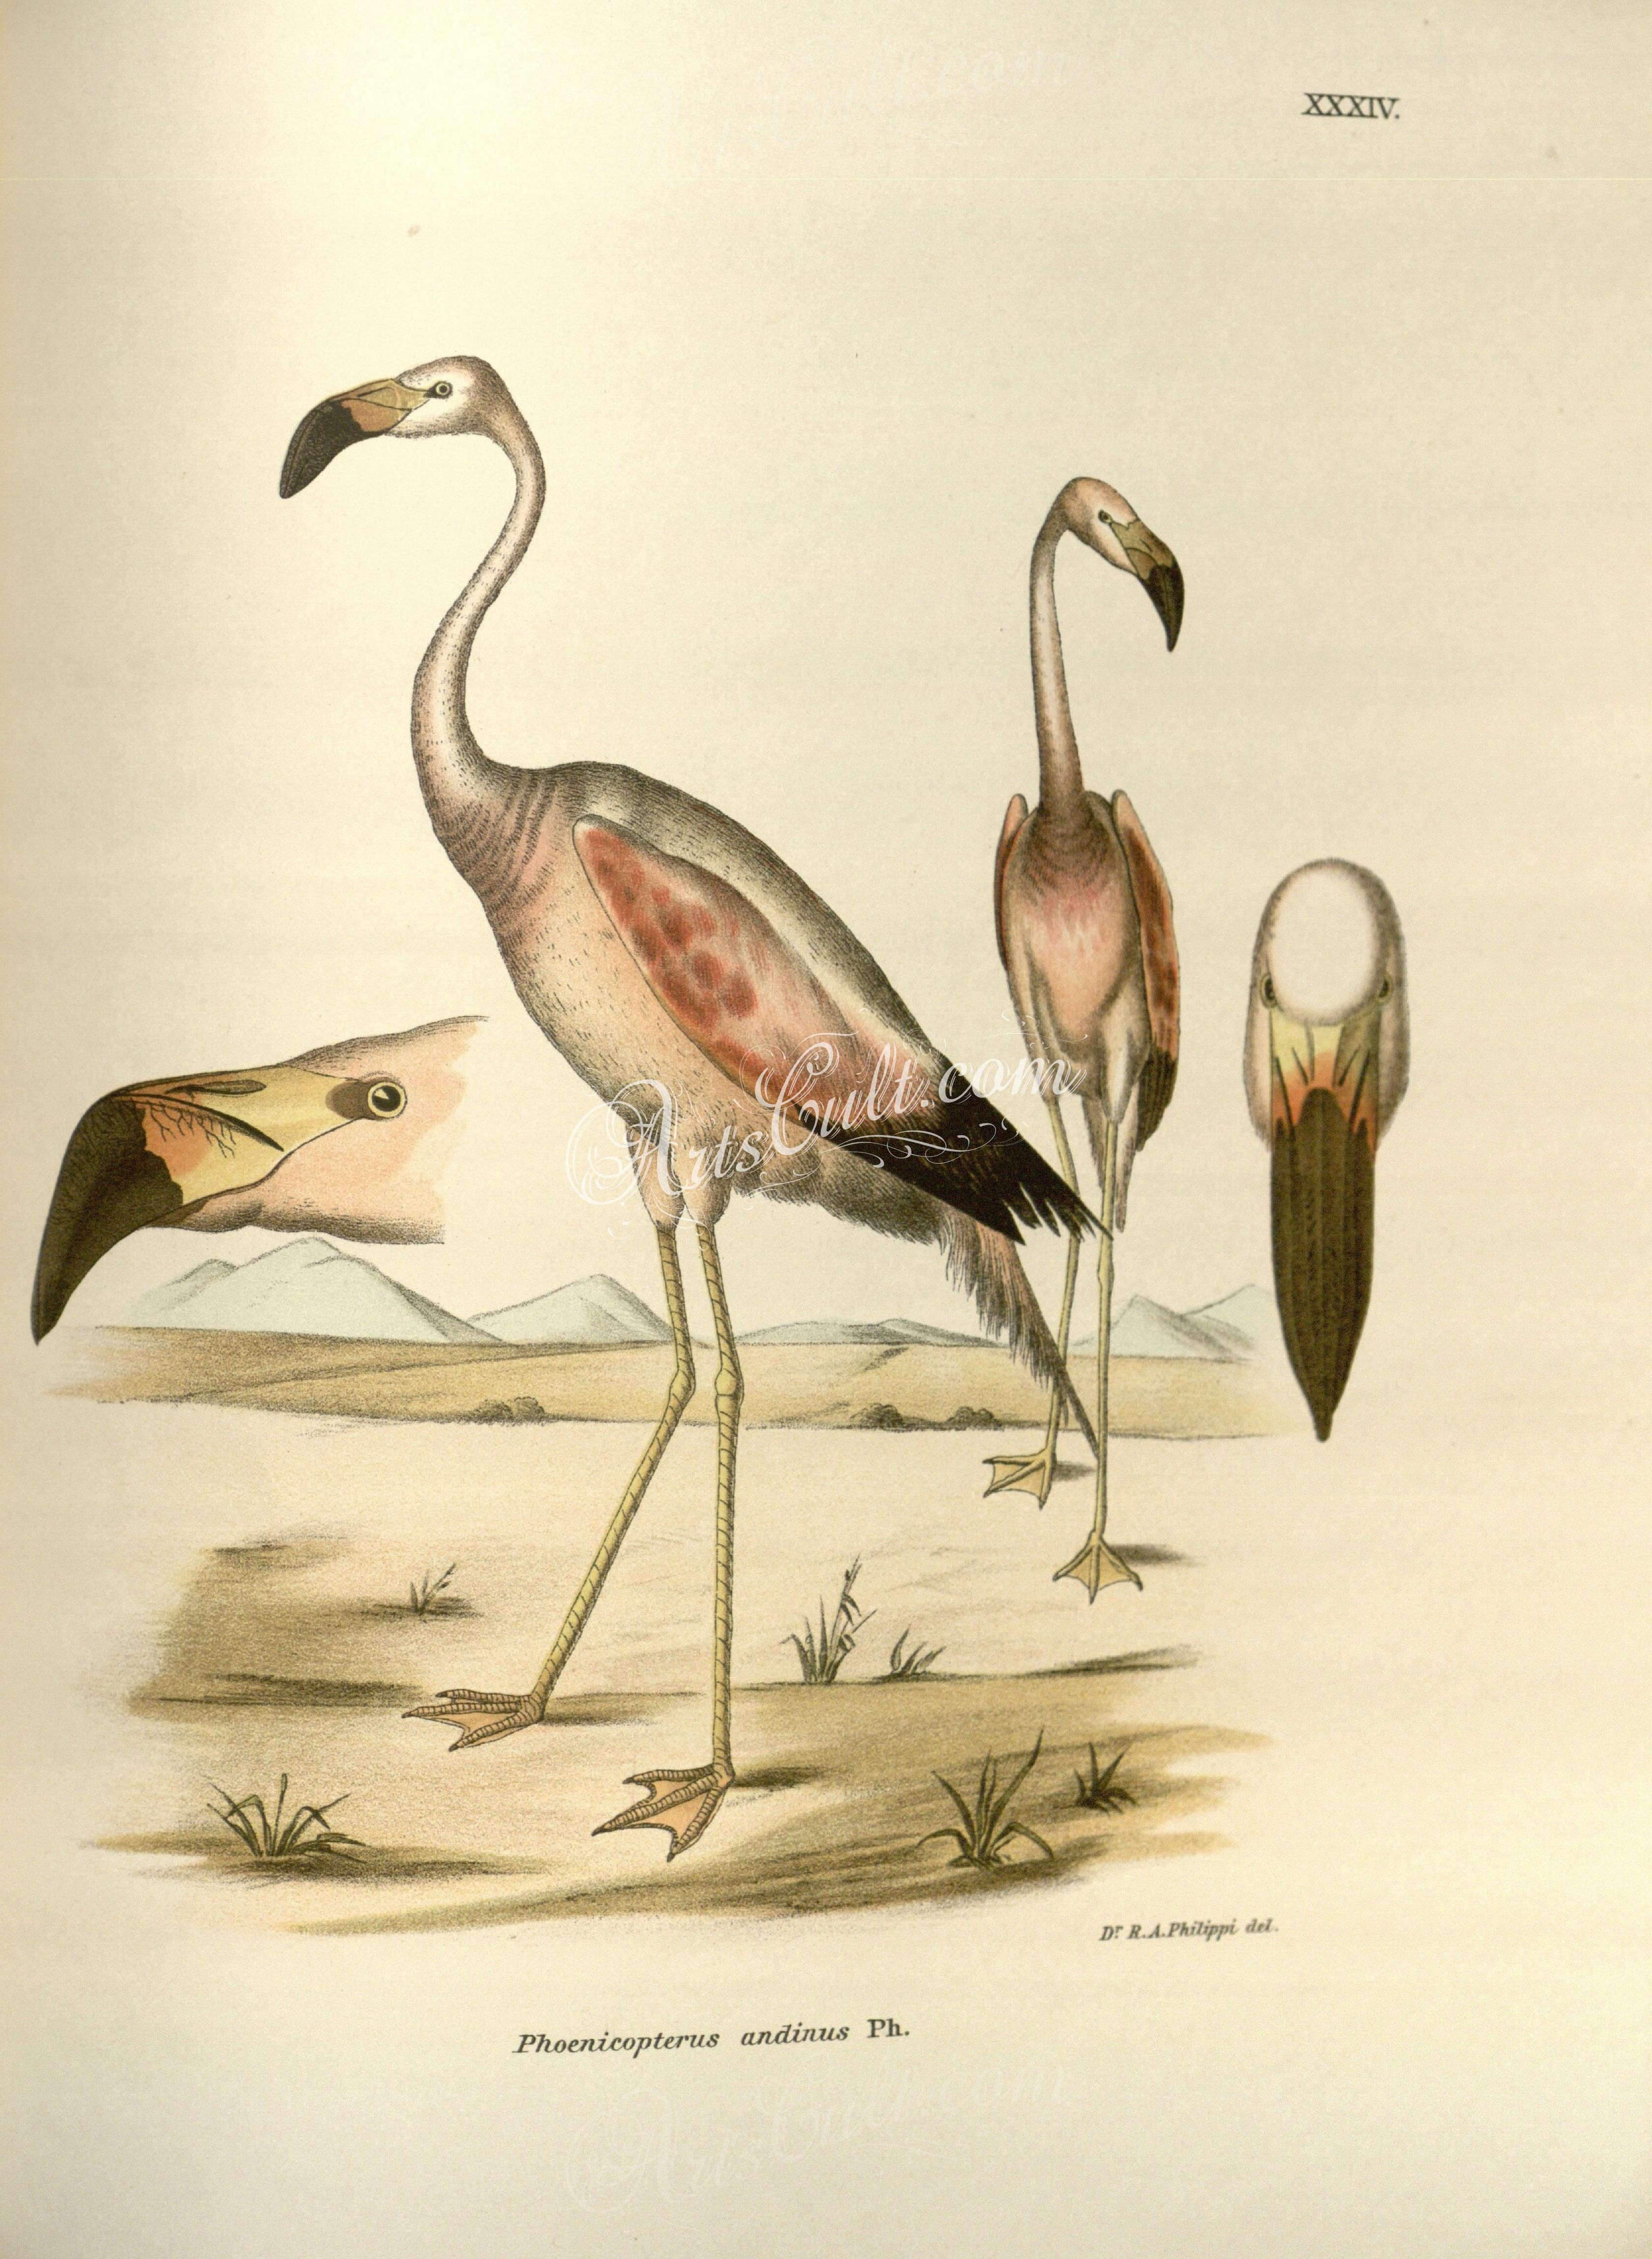 andean flamingo 2 high resolution image from old bookthis jpeg image is a high resolution printable scan of an old page or plate or engraving - Printable Bird Pictures 2